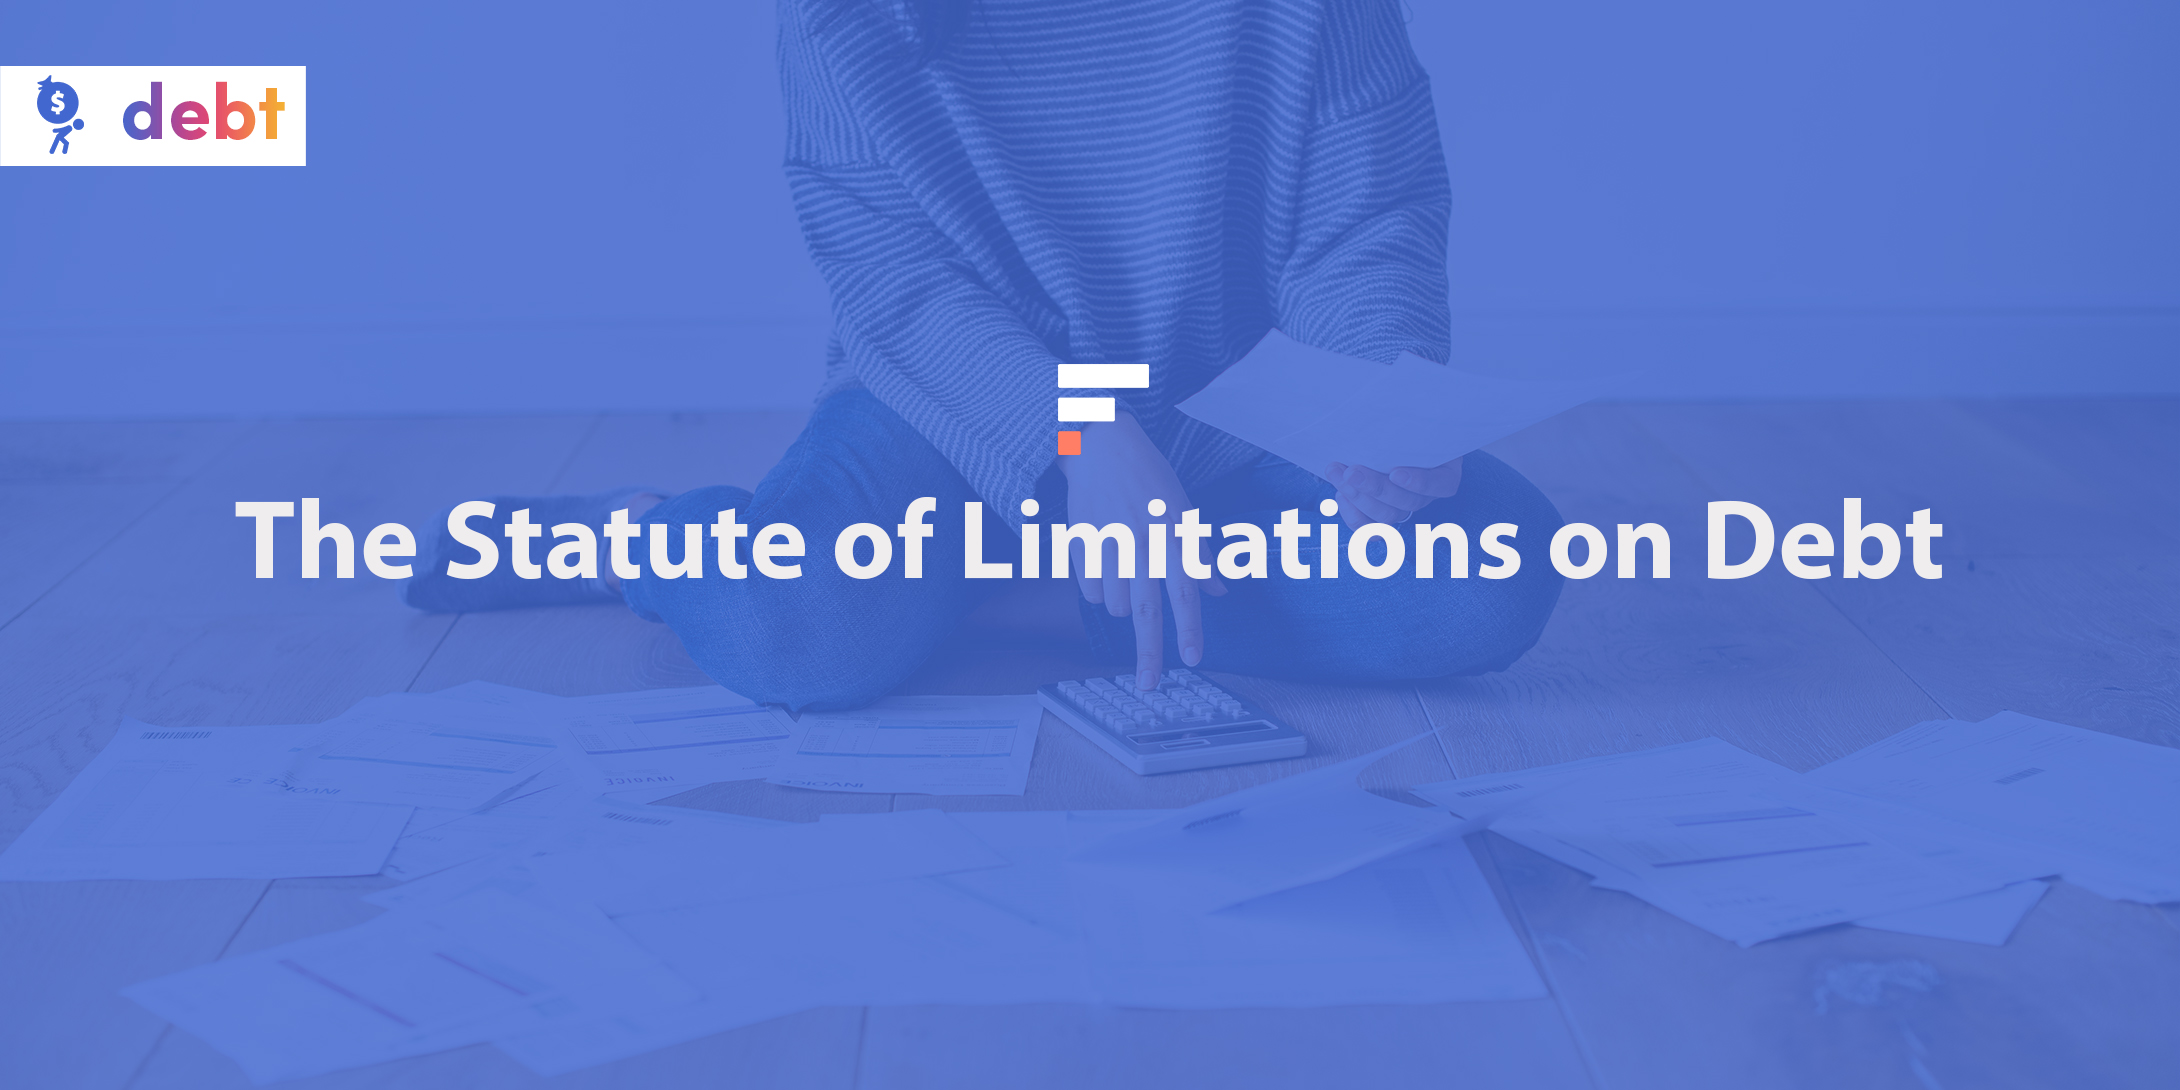 The statute of limitations on debt